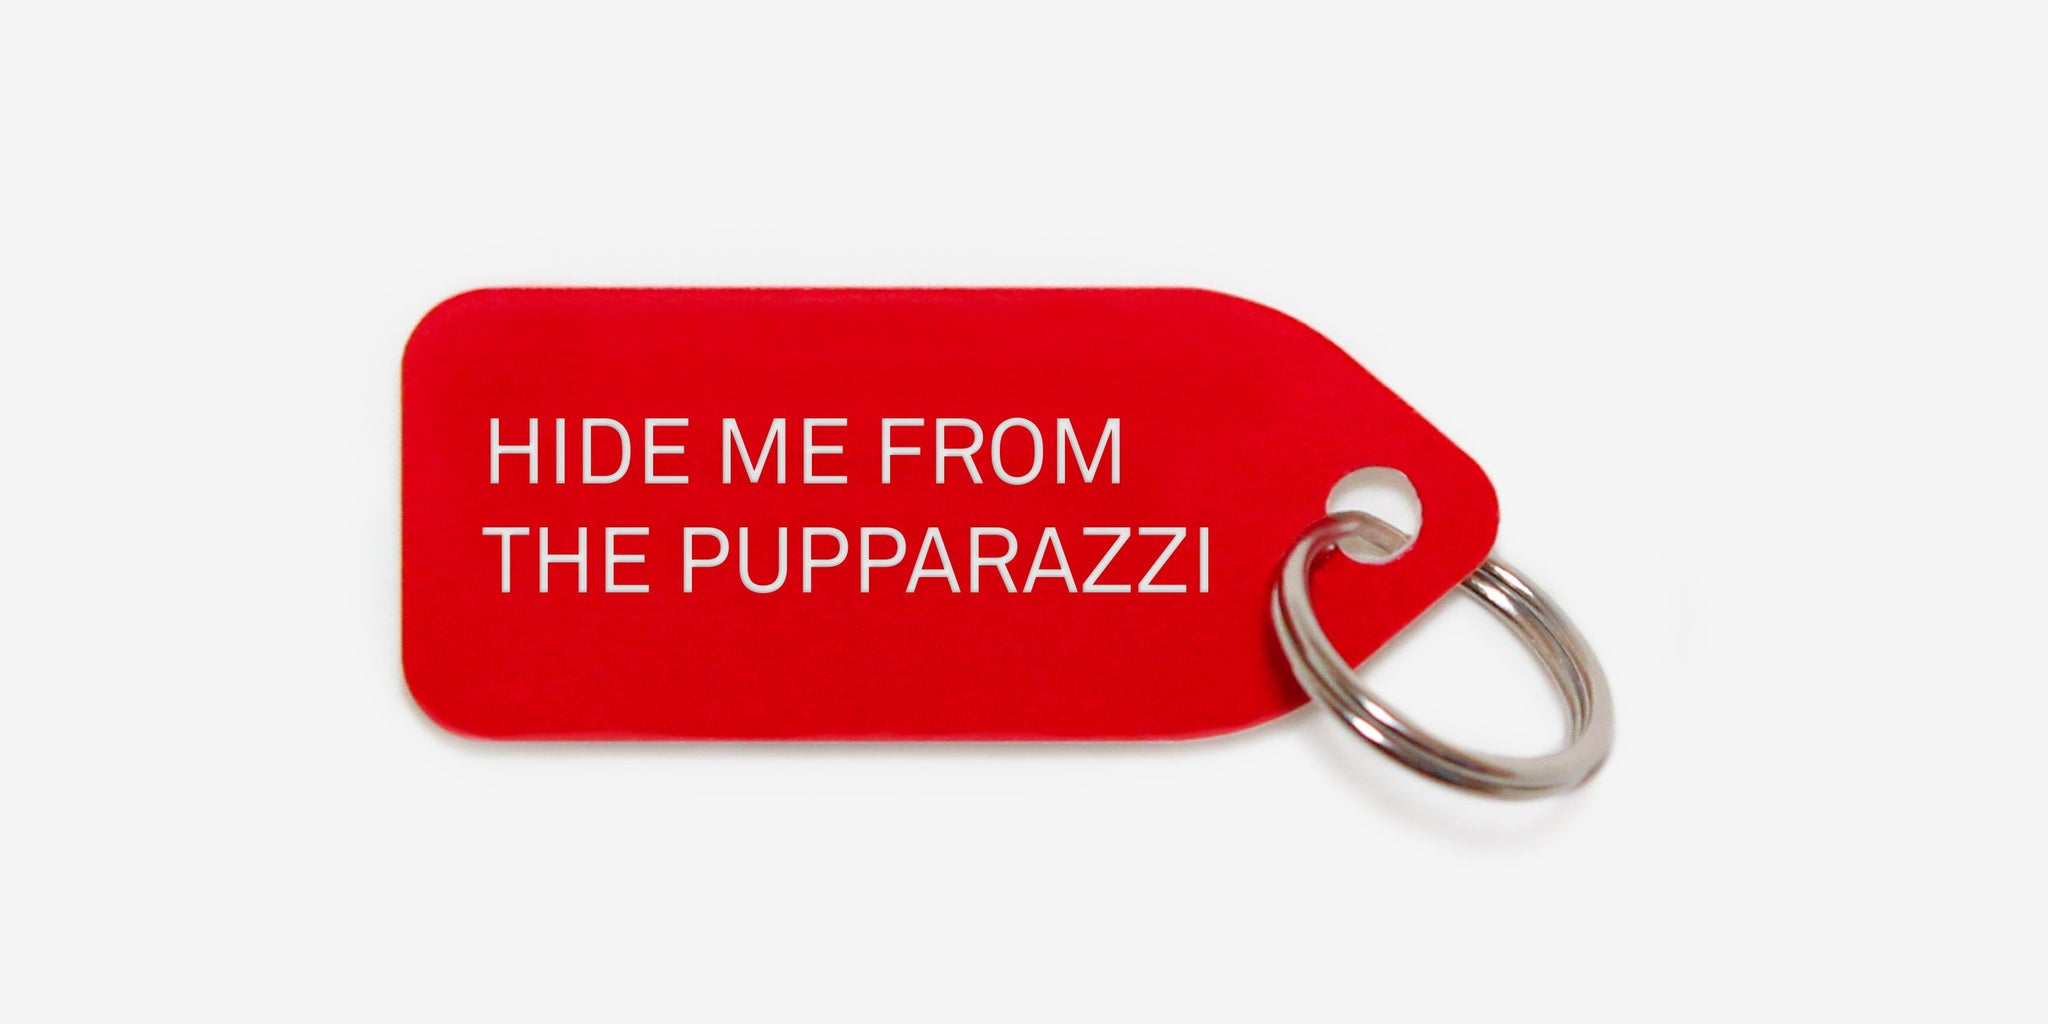 Hide me from the pupparazzi | dog tag | collar charm |